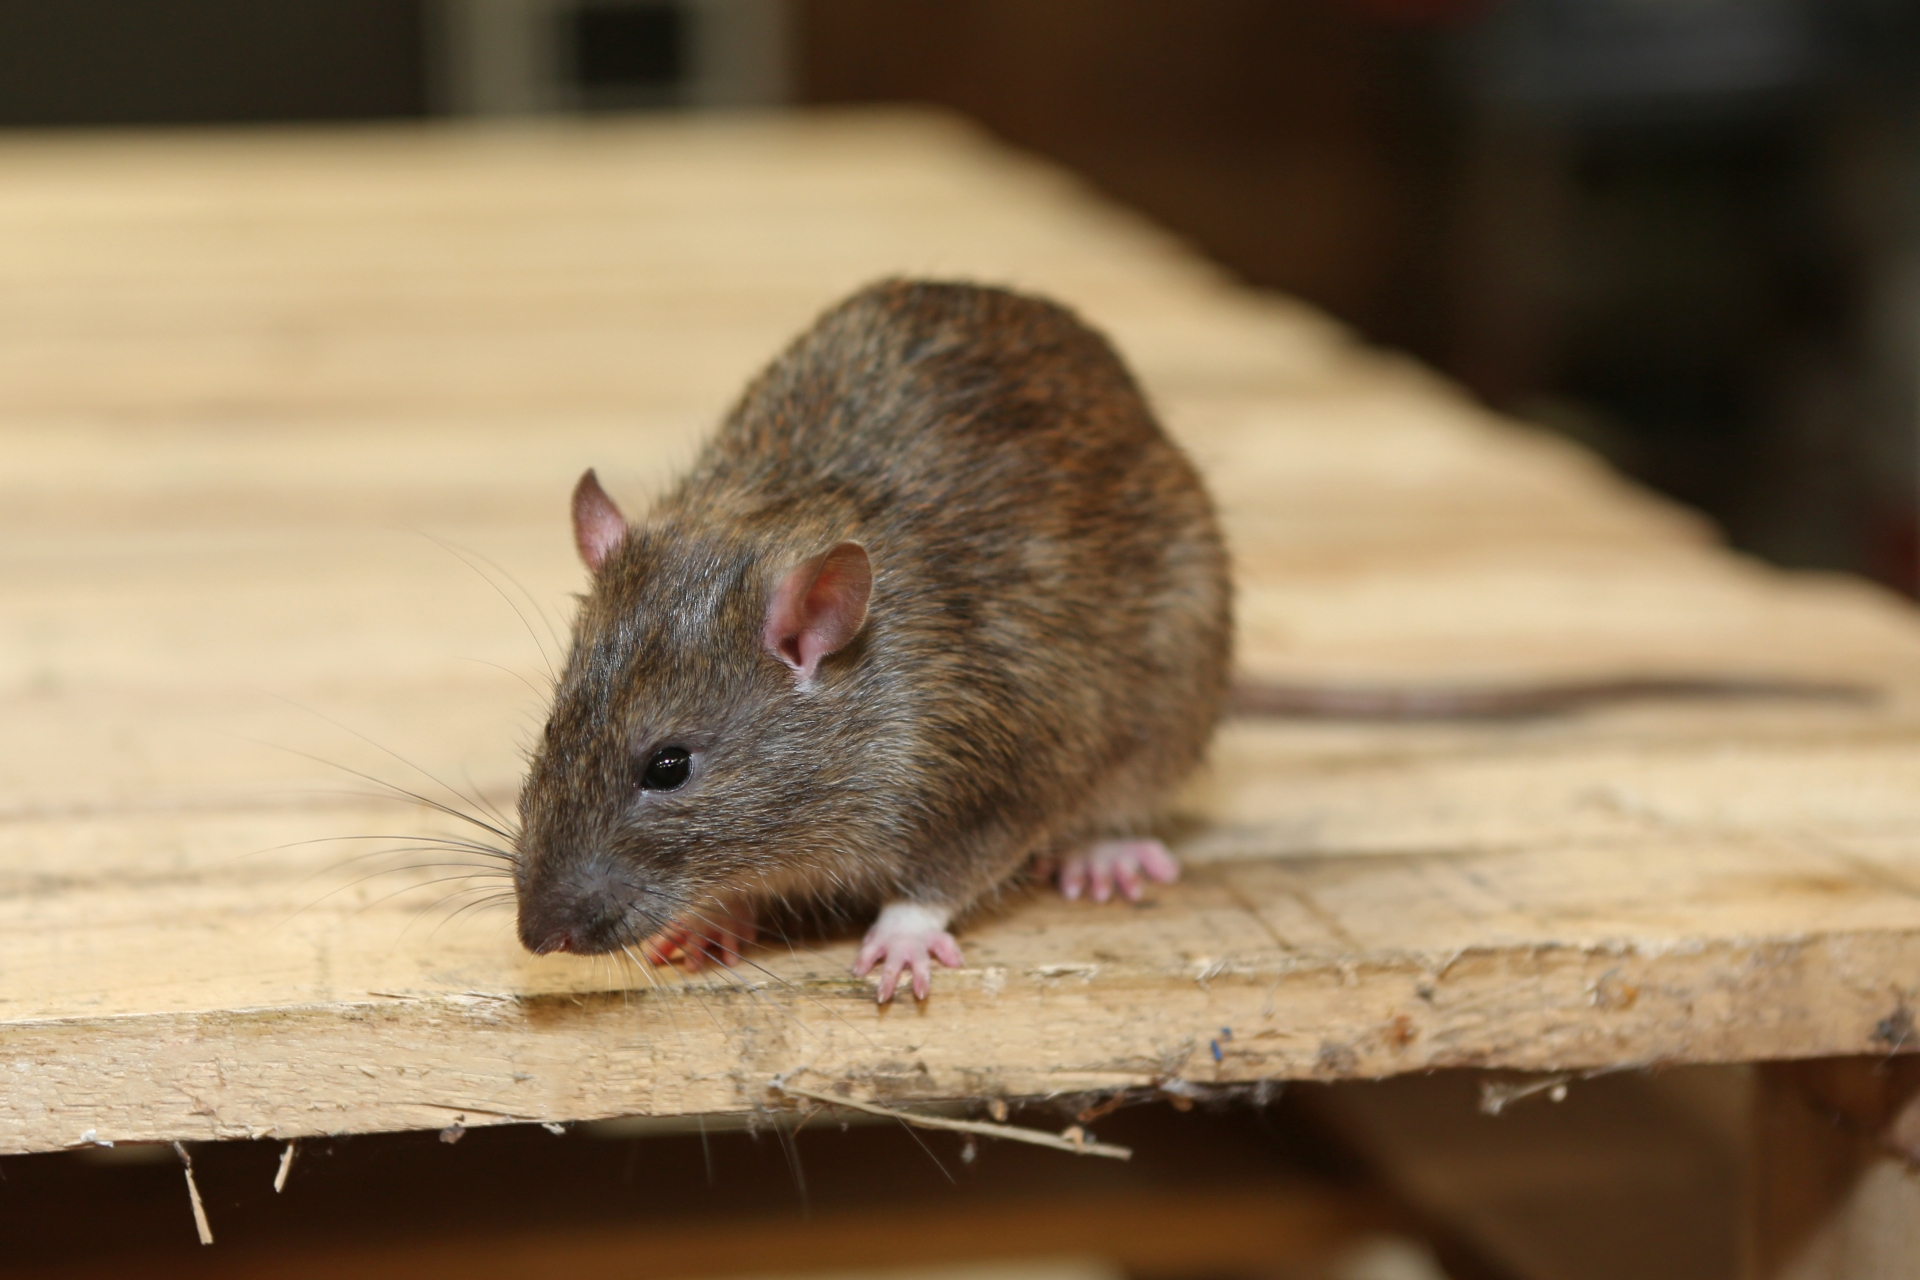 Rat Infestation, Pest Control in Tooting, SW17. Call Now 020 8166 9746